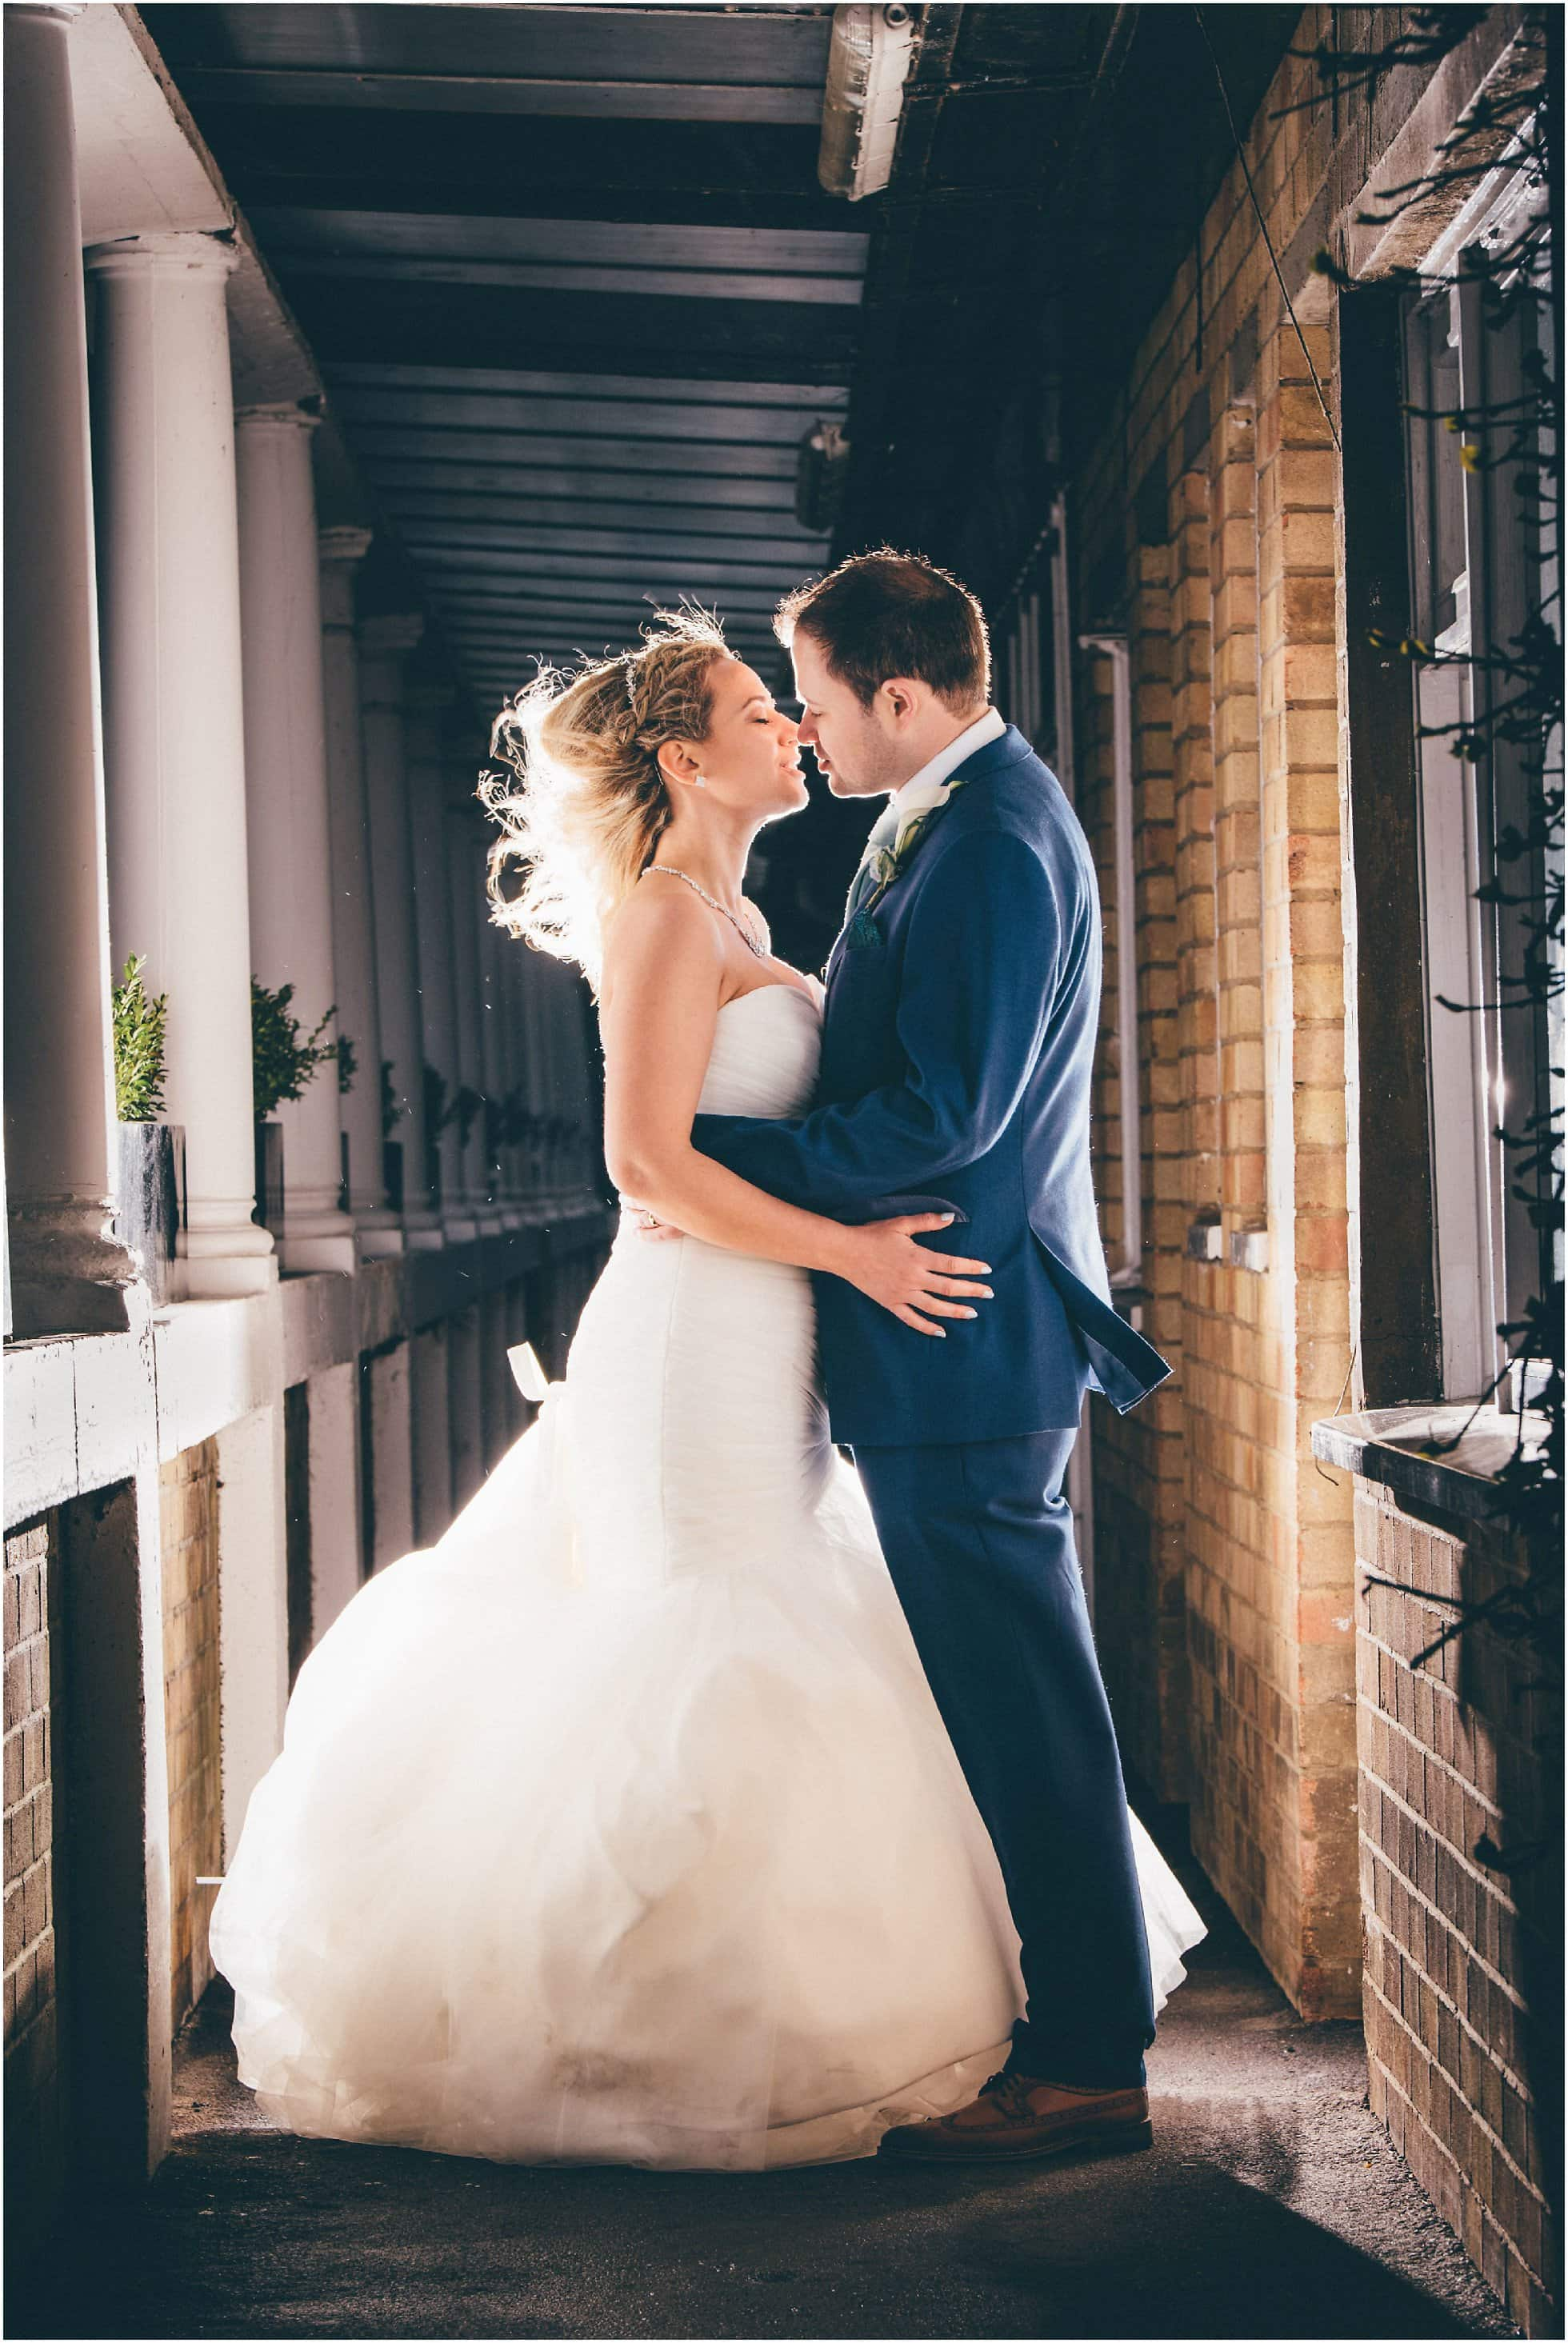 Romantic wedding photography at Ponsbourne Park Hotel in Hertfordhsihire